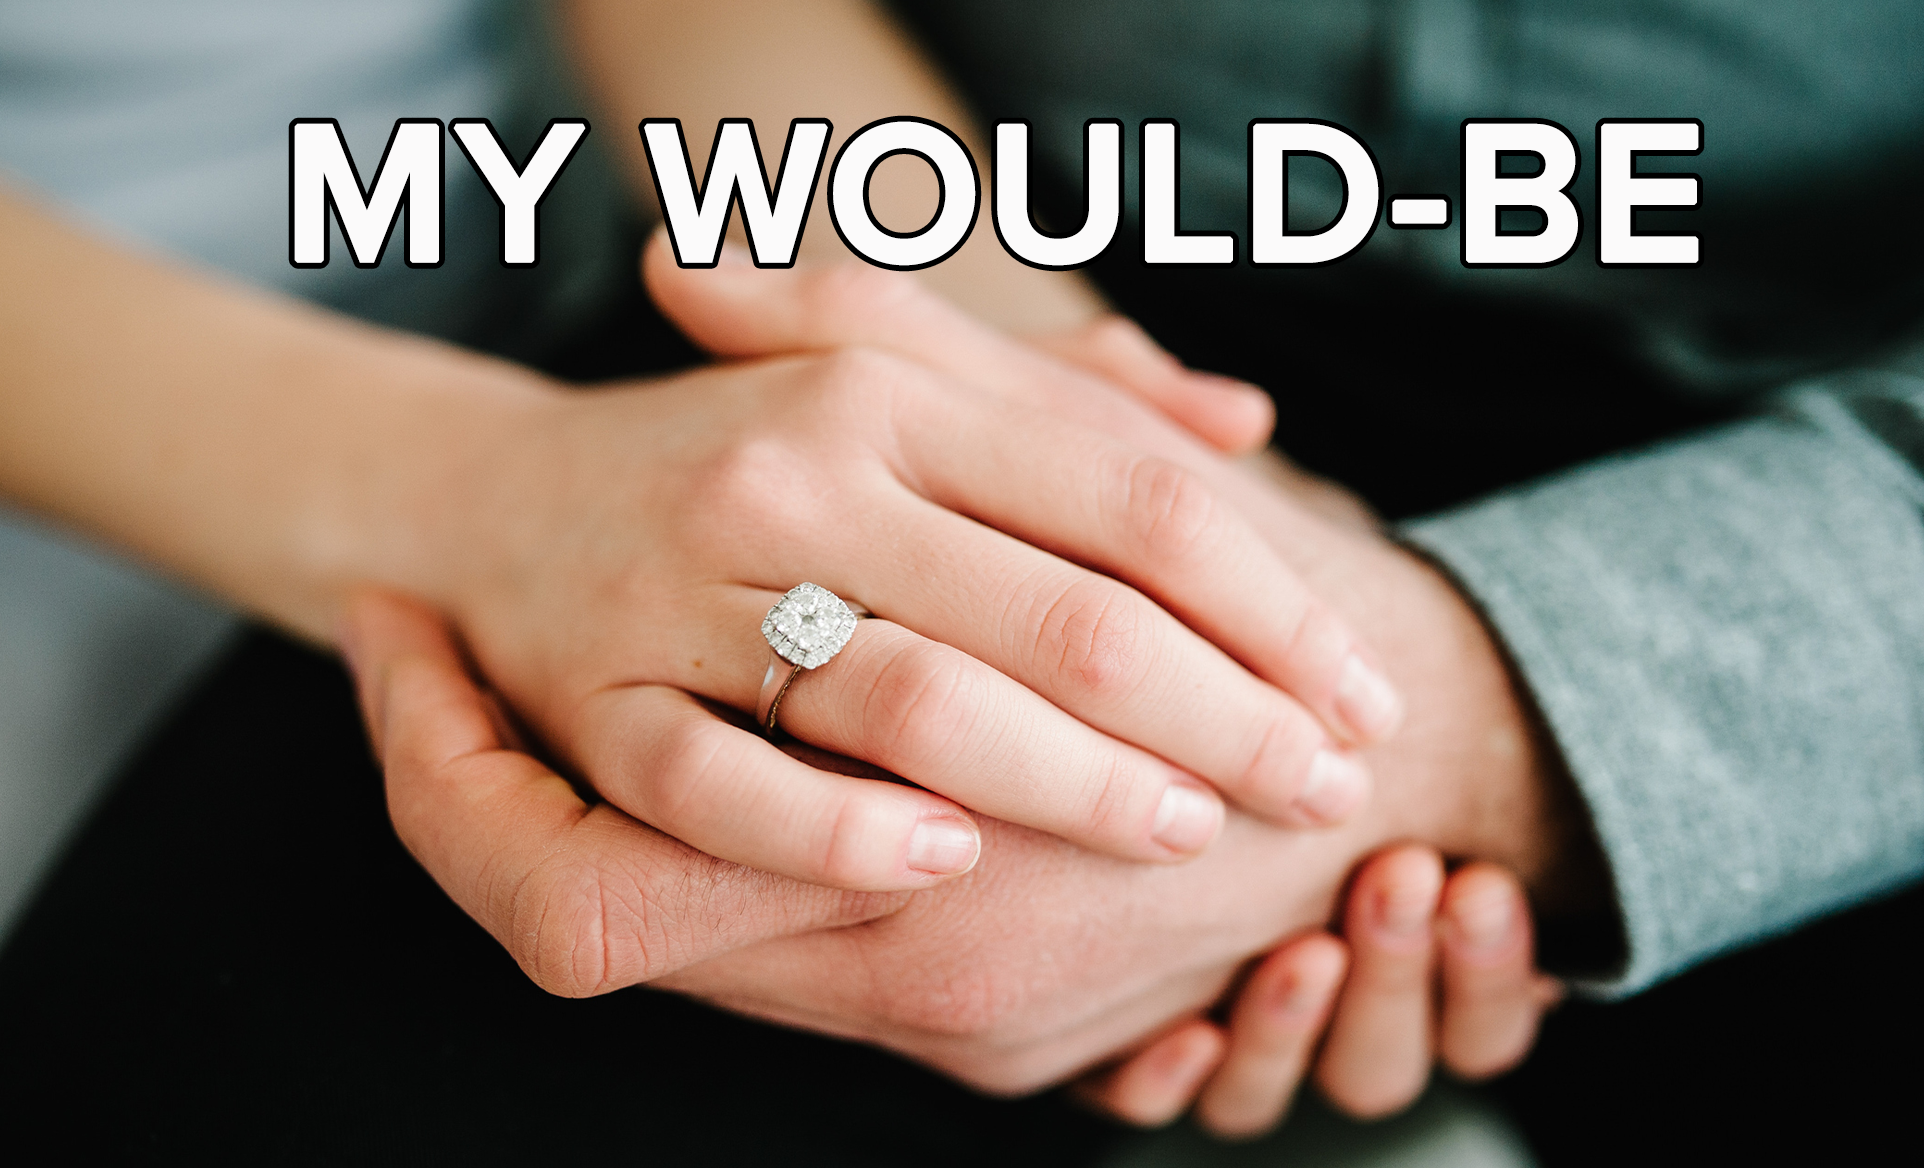 A newly engaged couple hold hands, flaunting the diamond ring adorning the woman's finger